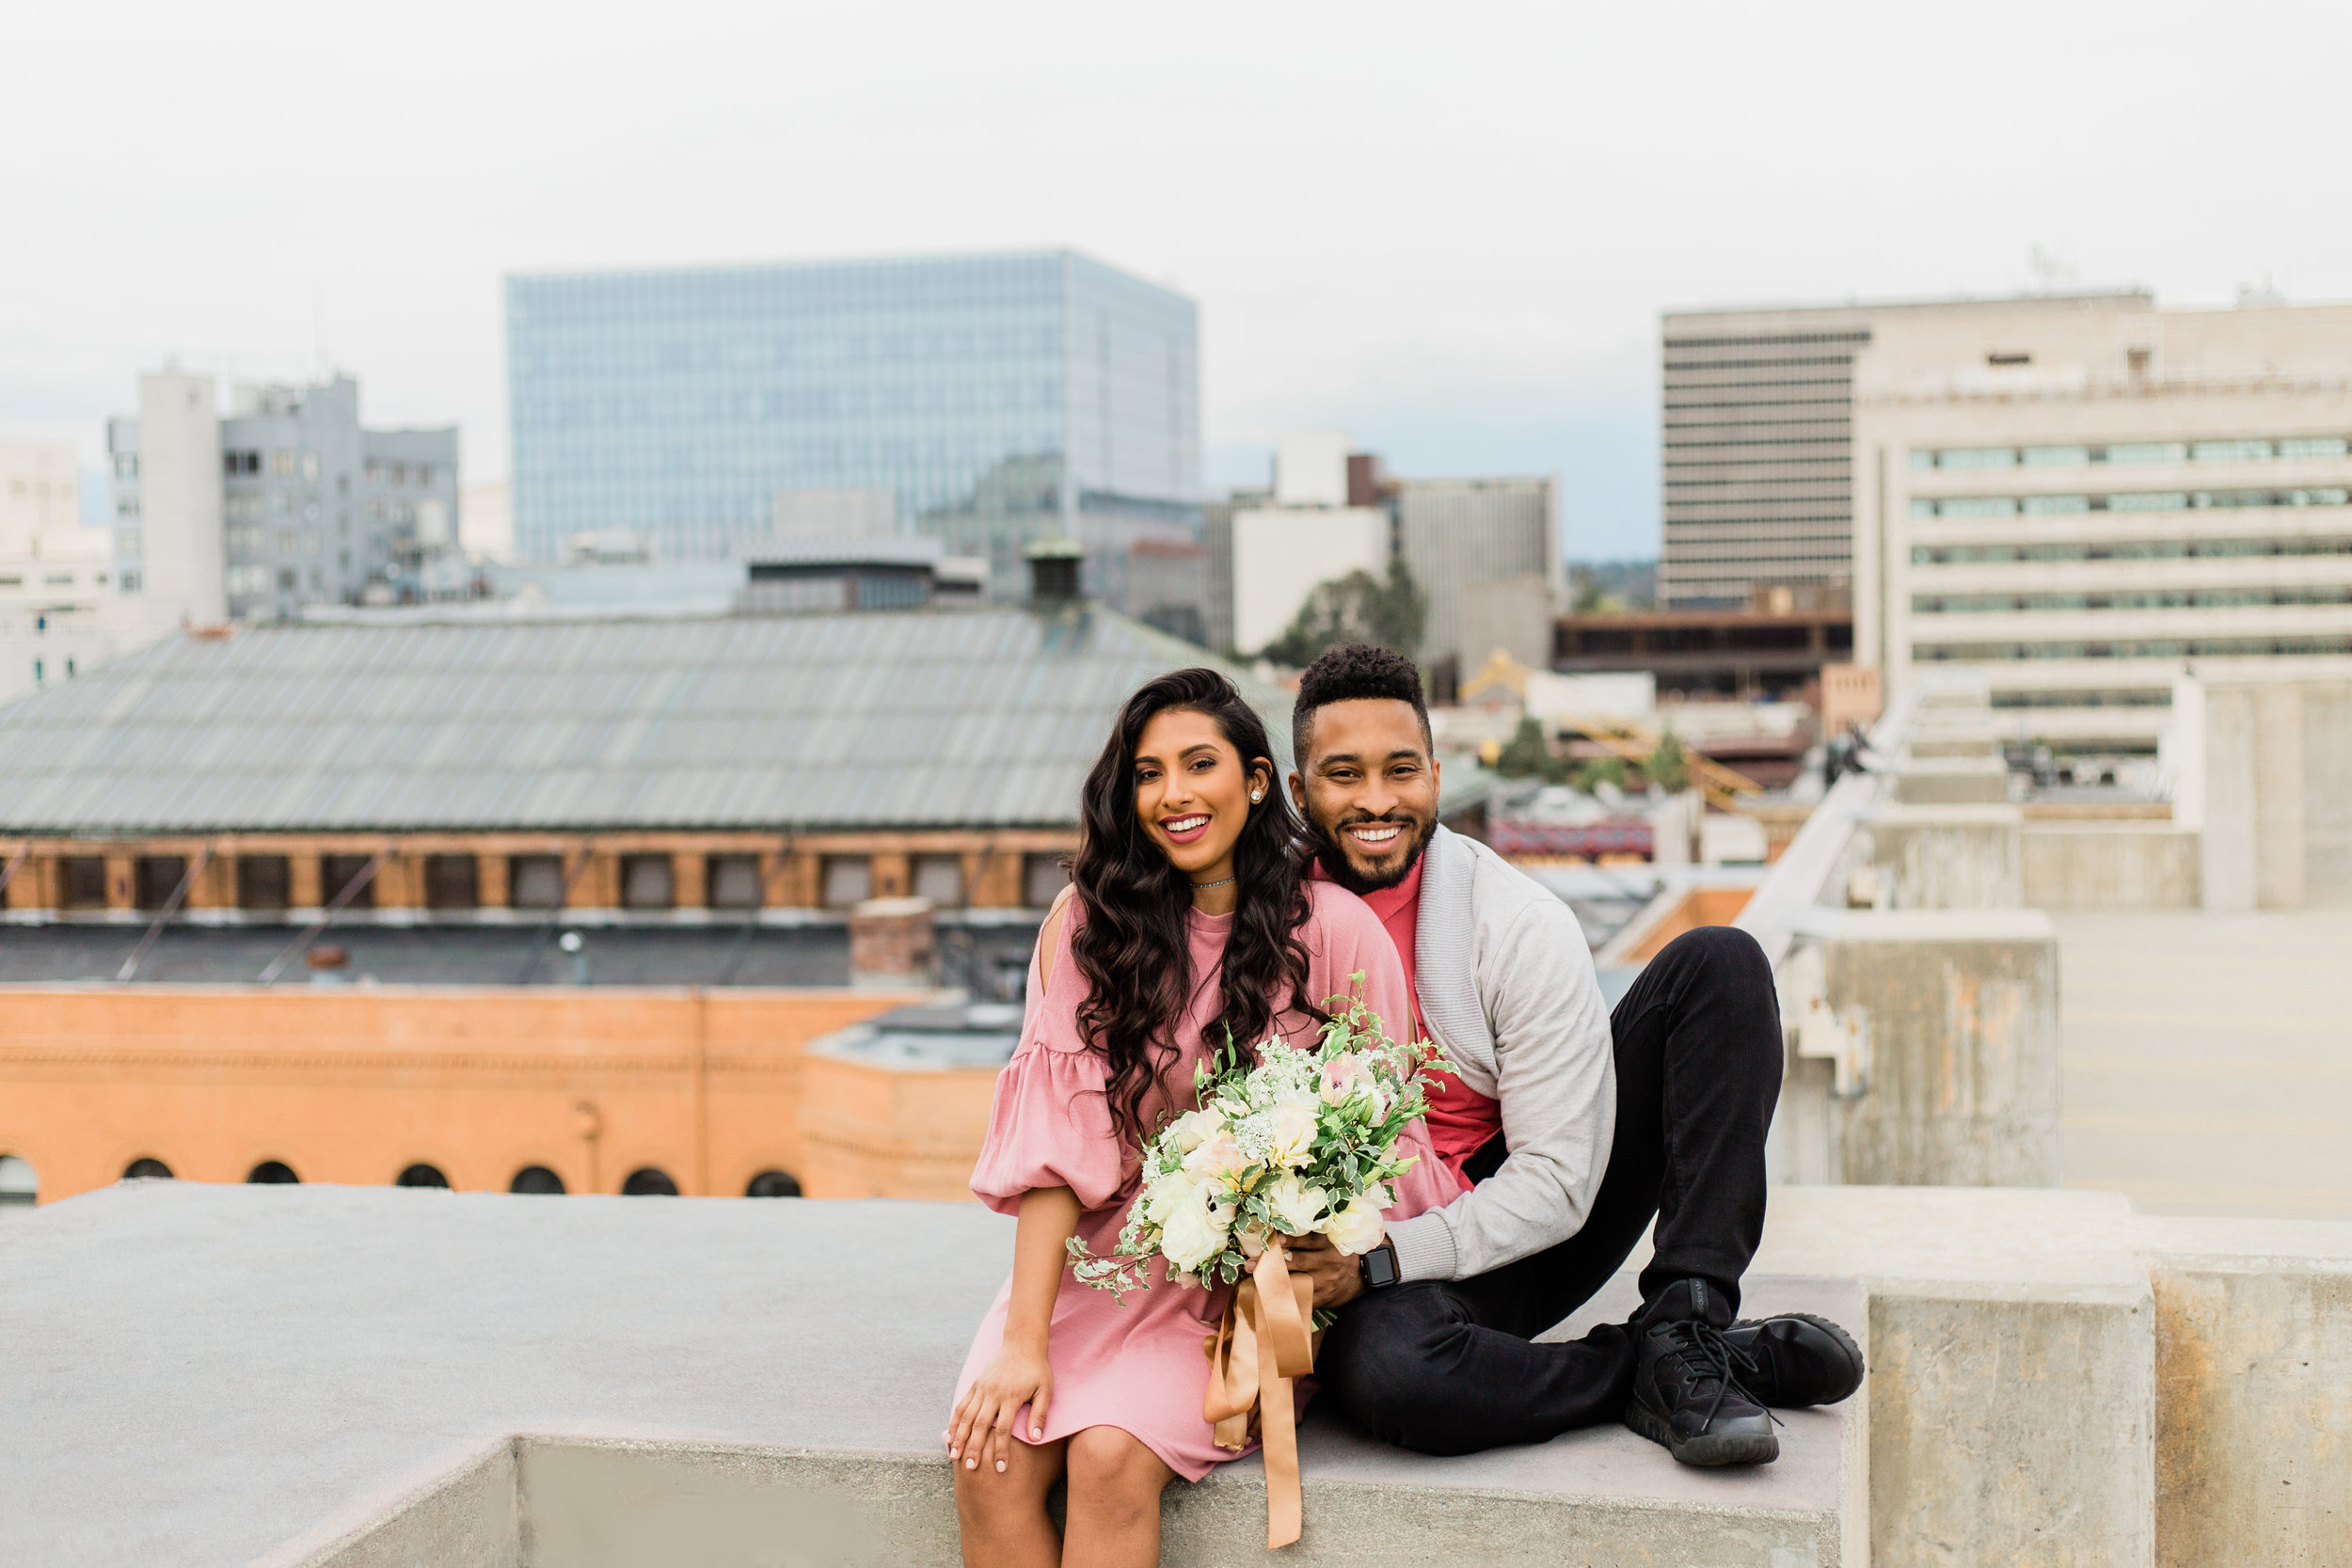 Downtown Los Angeles rooftop couple session. See the full set here: https://imeuniquejohnson.com/blogpost/downtown-los-angeles-rooftop-couple-shoot